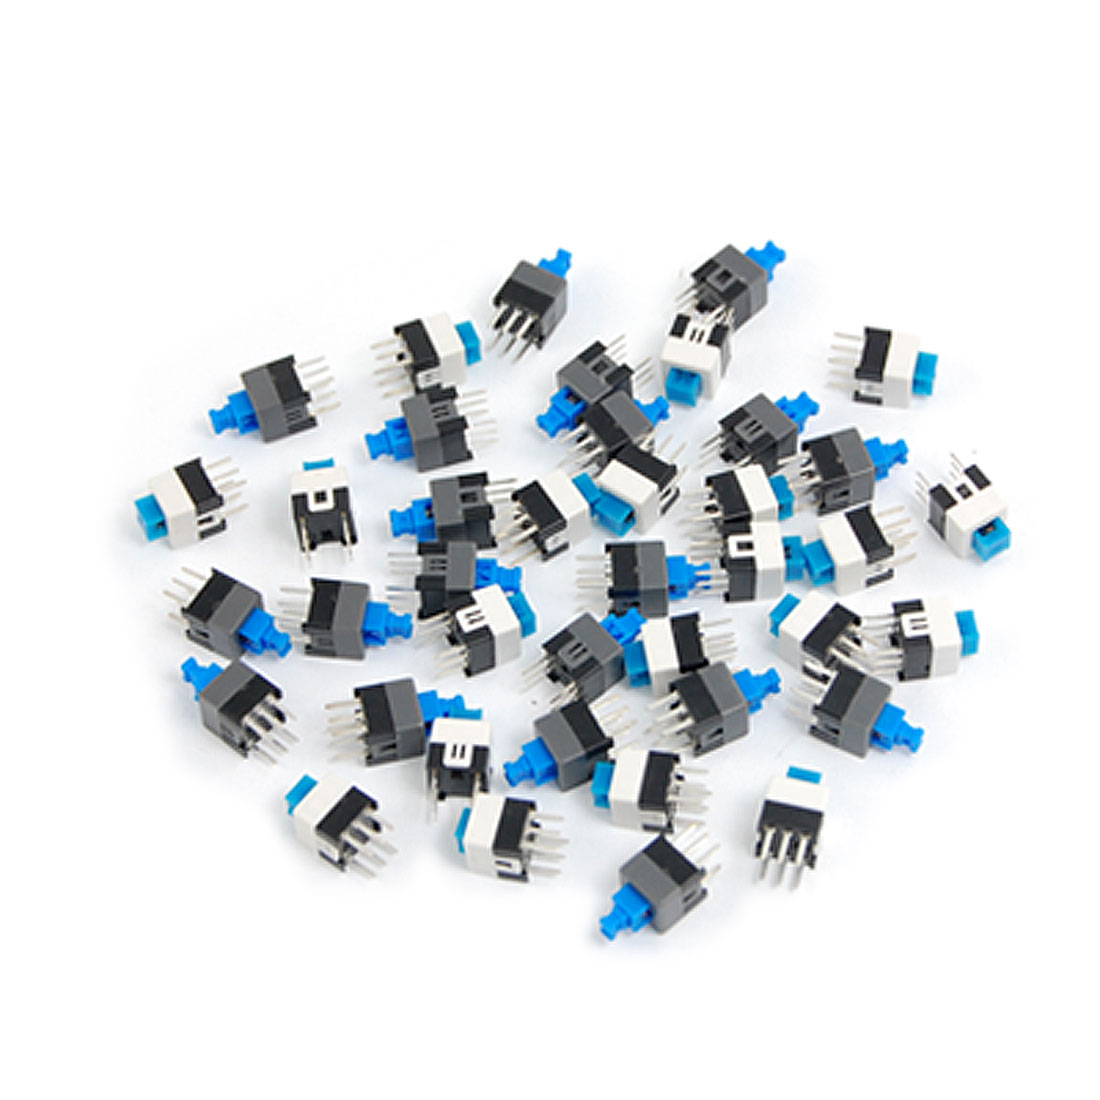 UXCELL 40 Pcs 7 X 7Mm Pcb Tact Tactile Push Button Switch Self Lock 6 Pin Dip Self-Locking For Fields Of Electronic Product